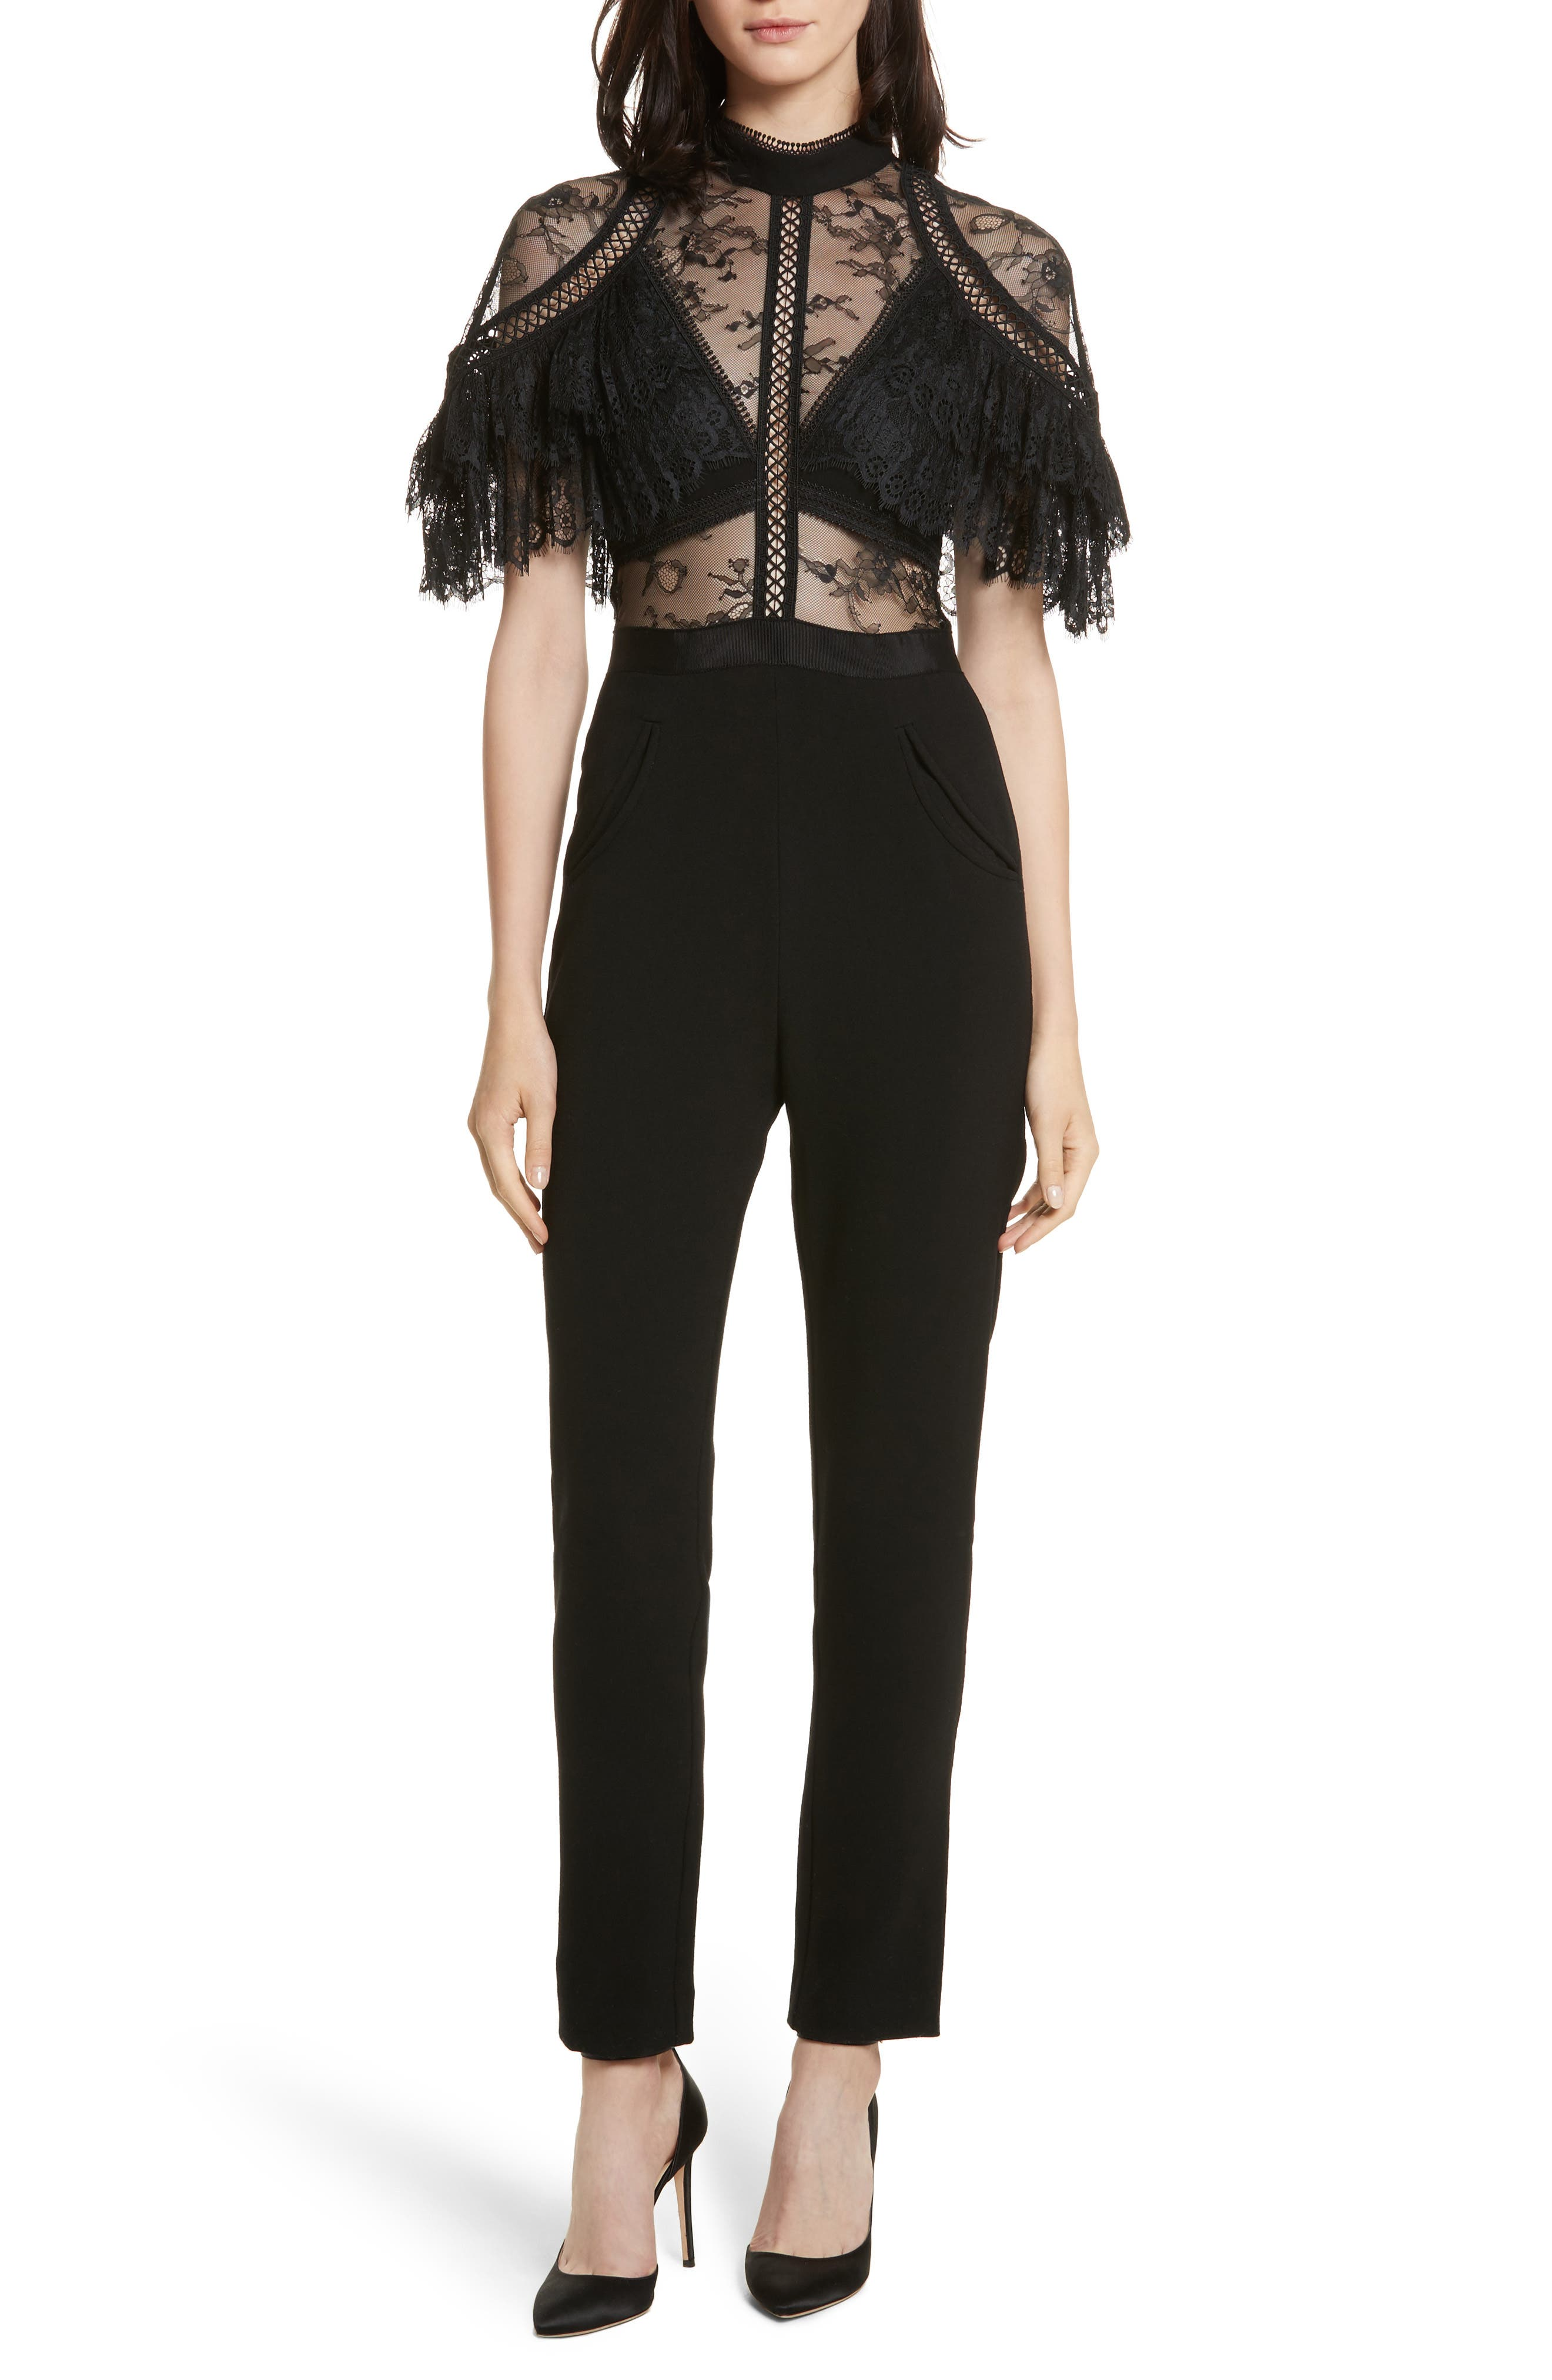 Self-Portrait Pleated Lace Bodice Jumpsuit